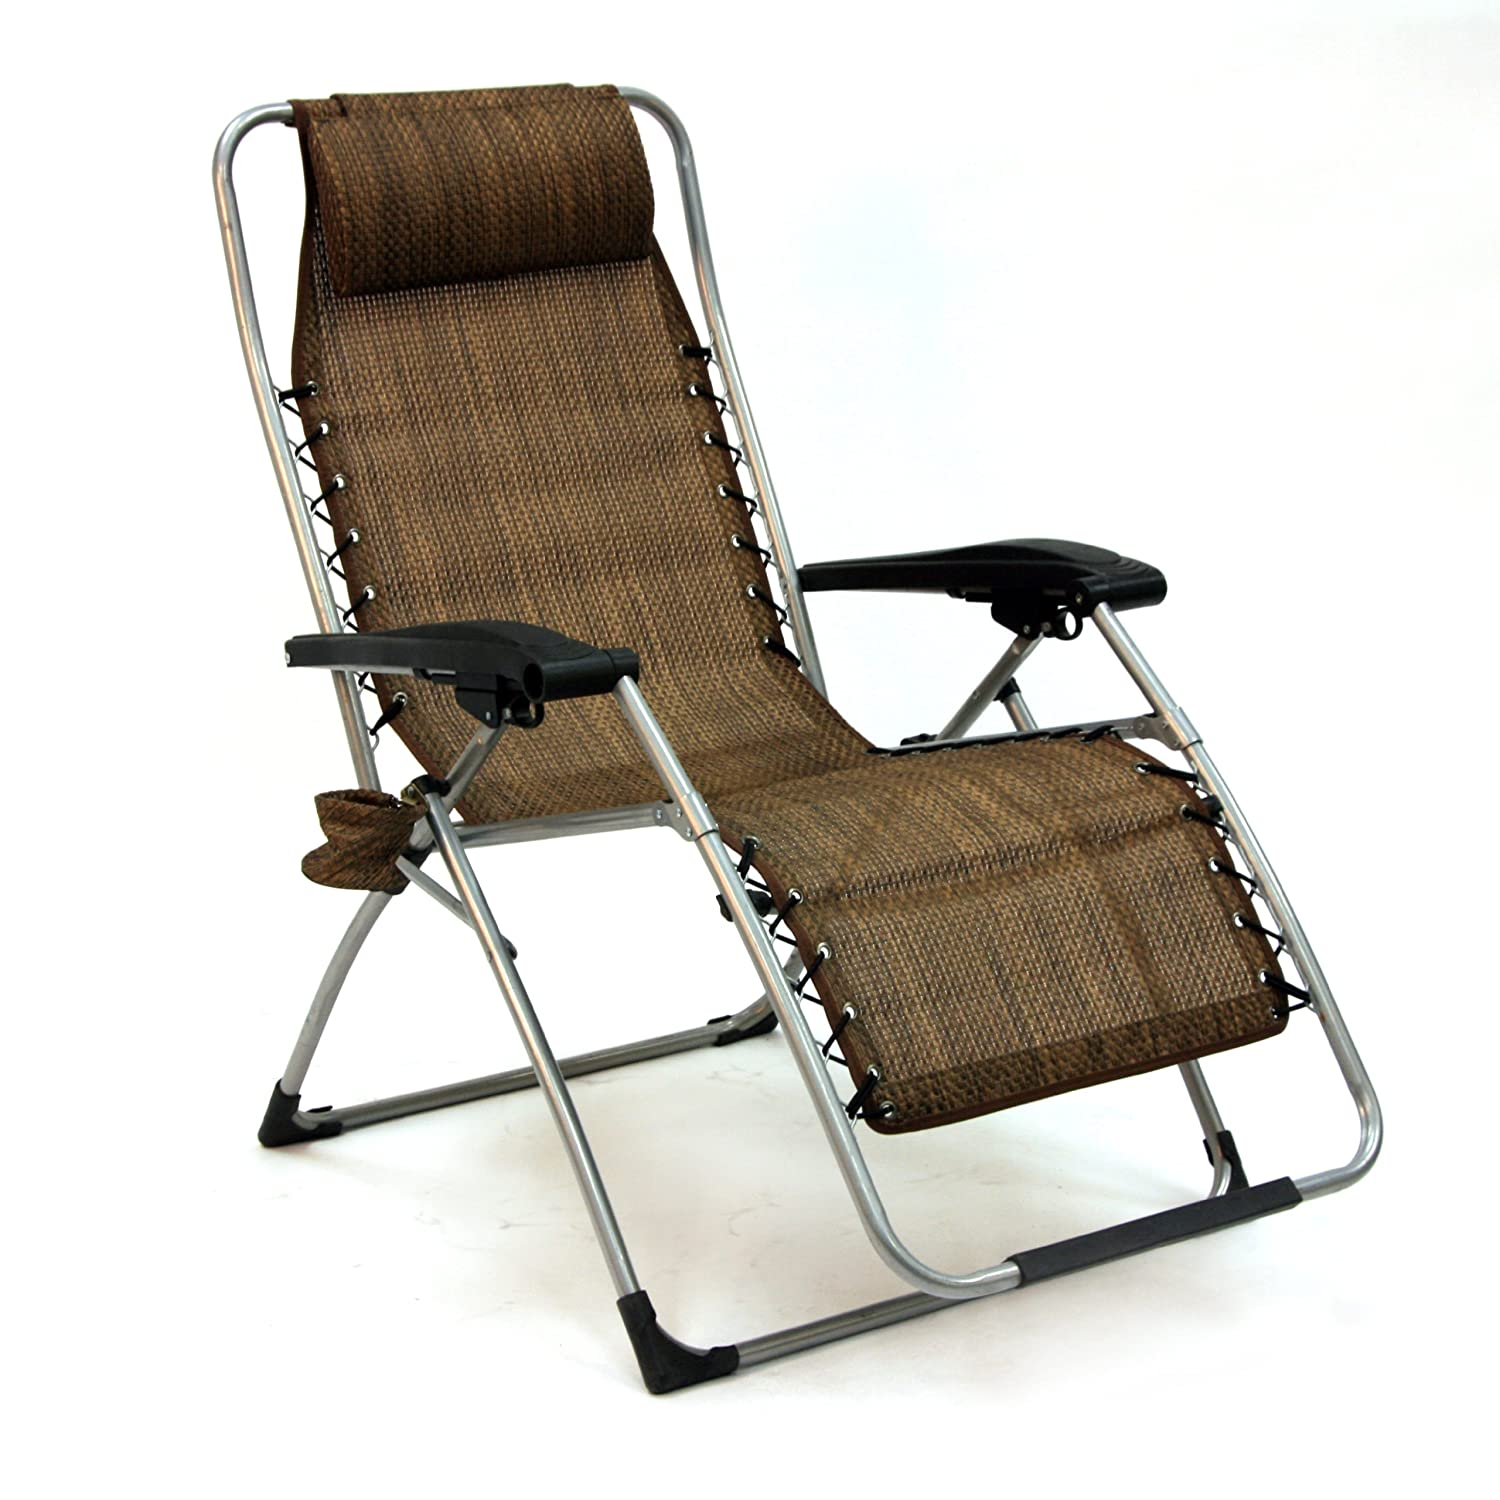 Amazon.com : XL Anti-Gravity Lounge Chair : Patio Lounge Chairs ...